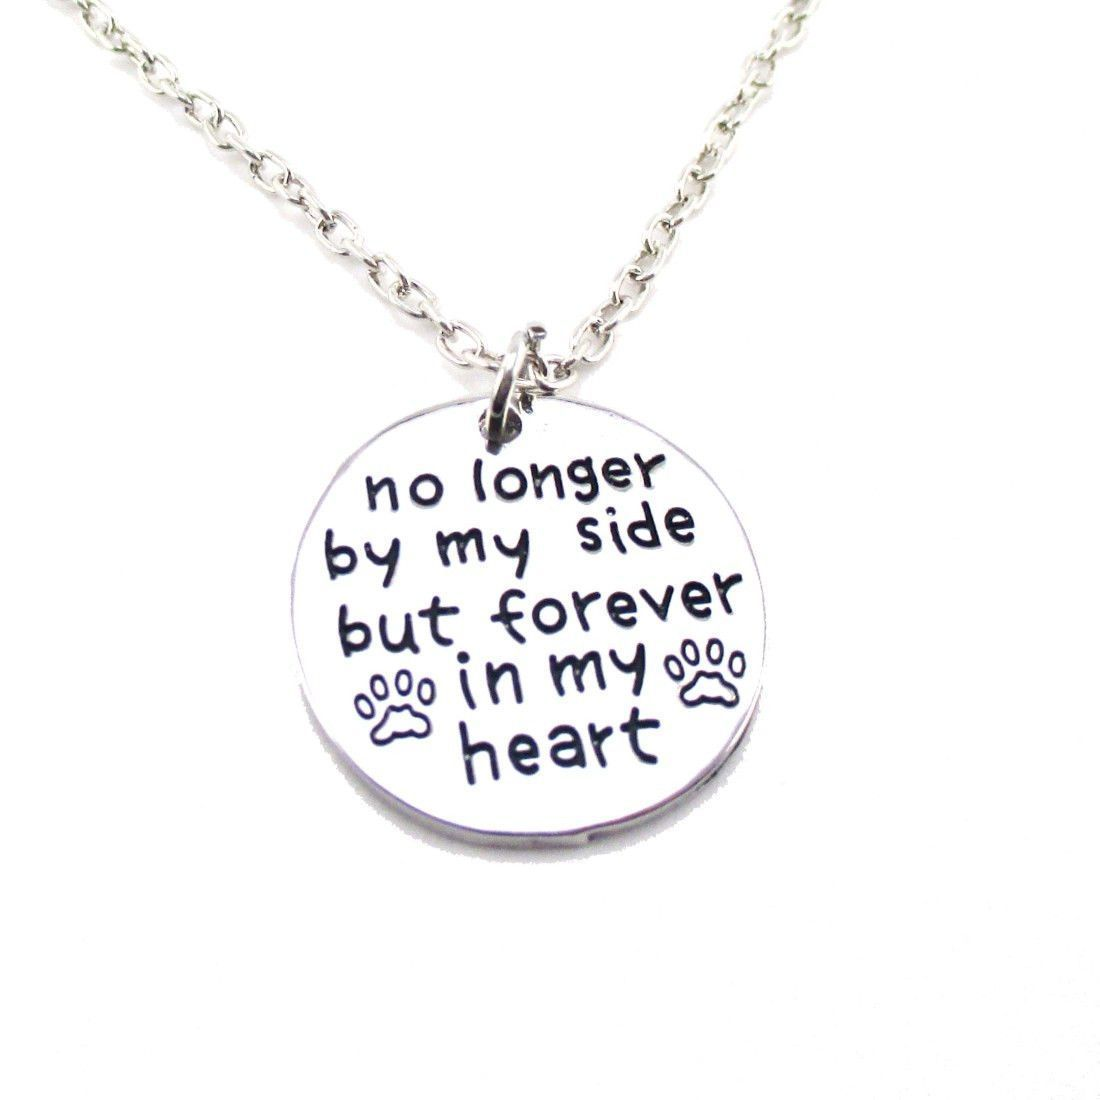 Dog memorial no longer by my side but forever in my heart pendant dog memorial no longer by my side but forever in my heart pendant necklace aloadofball Image collections